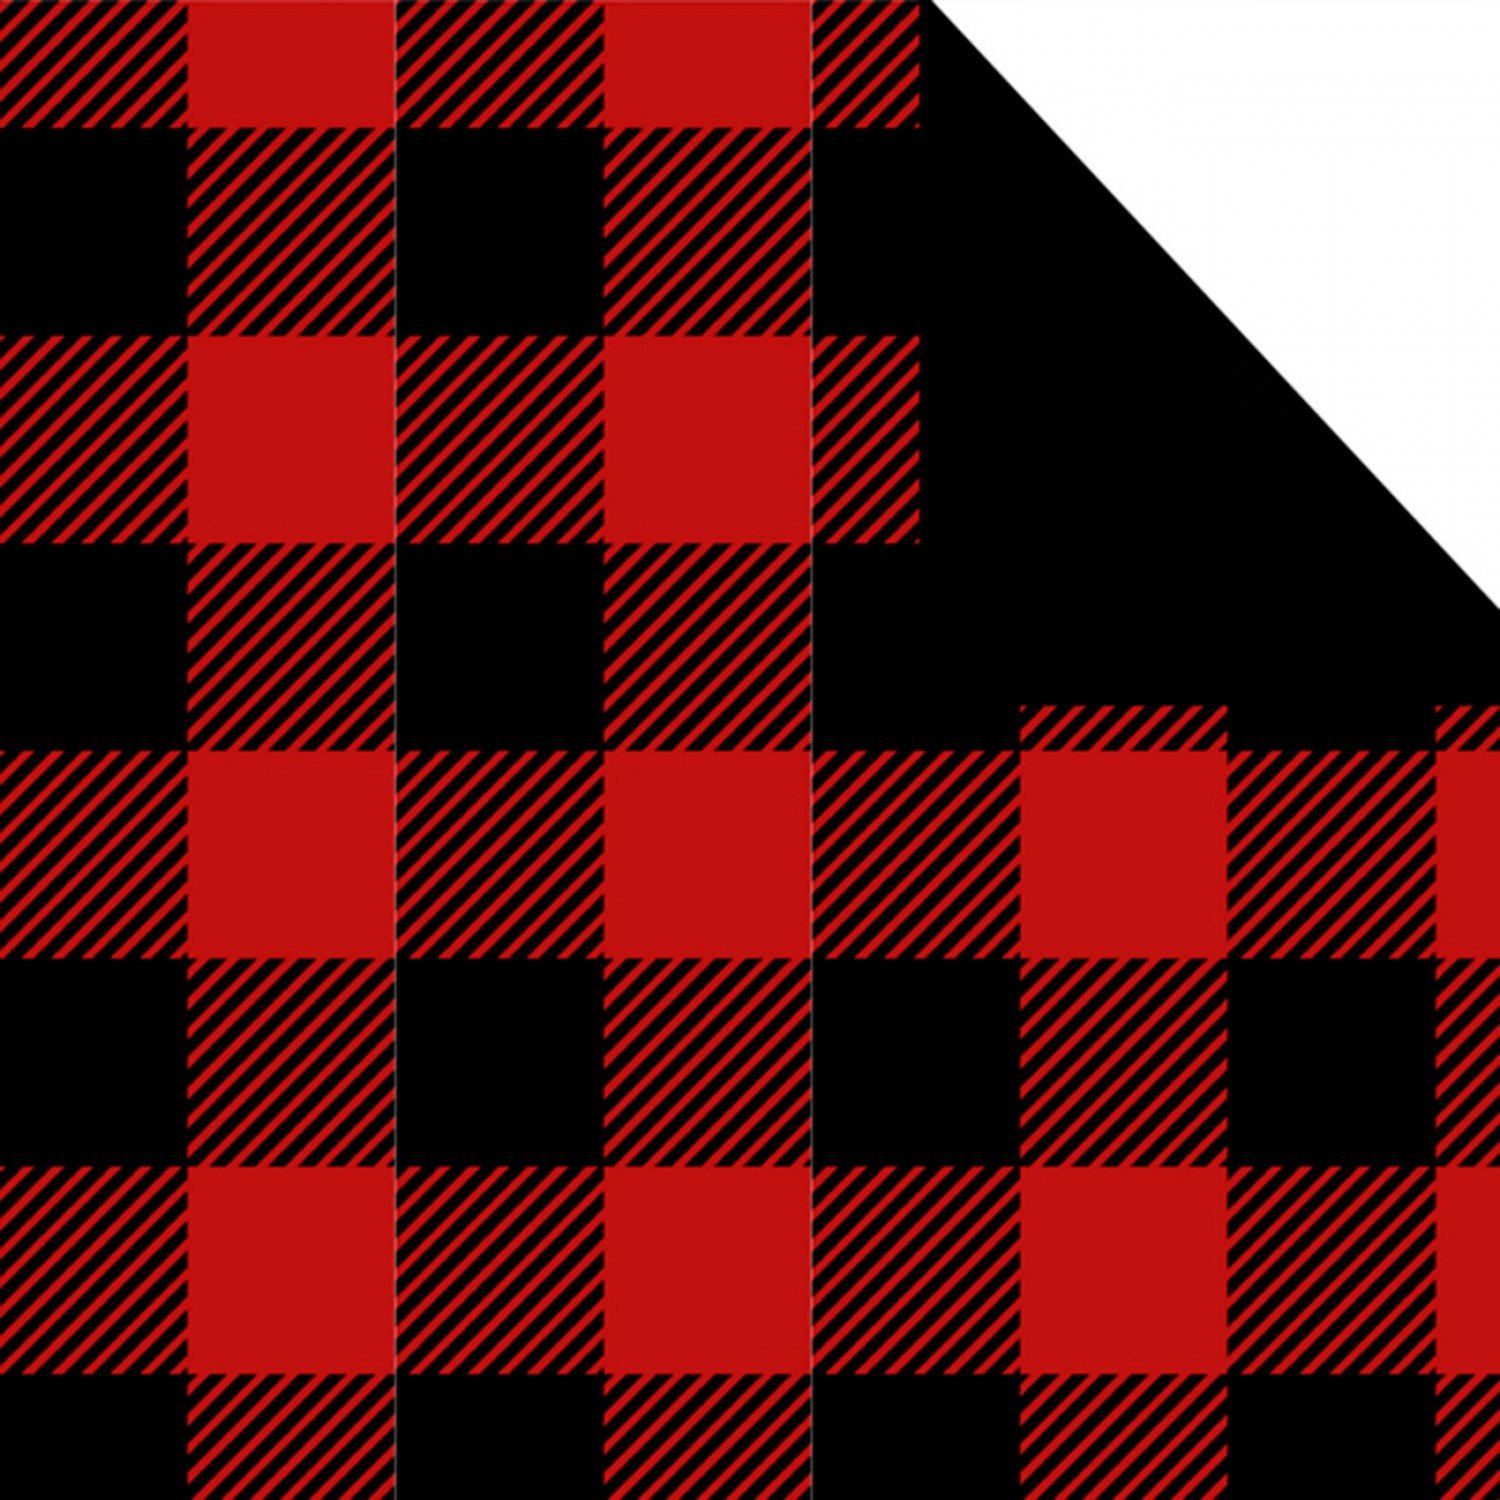 Double Faced Quilts. Buffalo Plaid Black Red Quilted Fabric